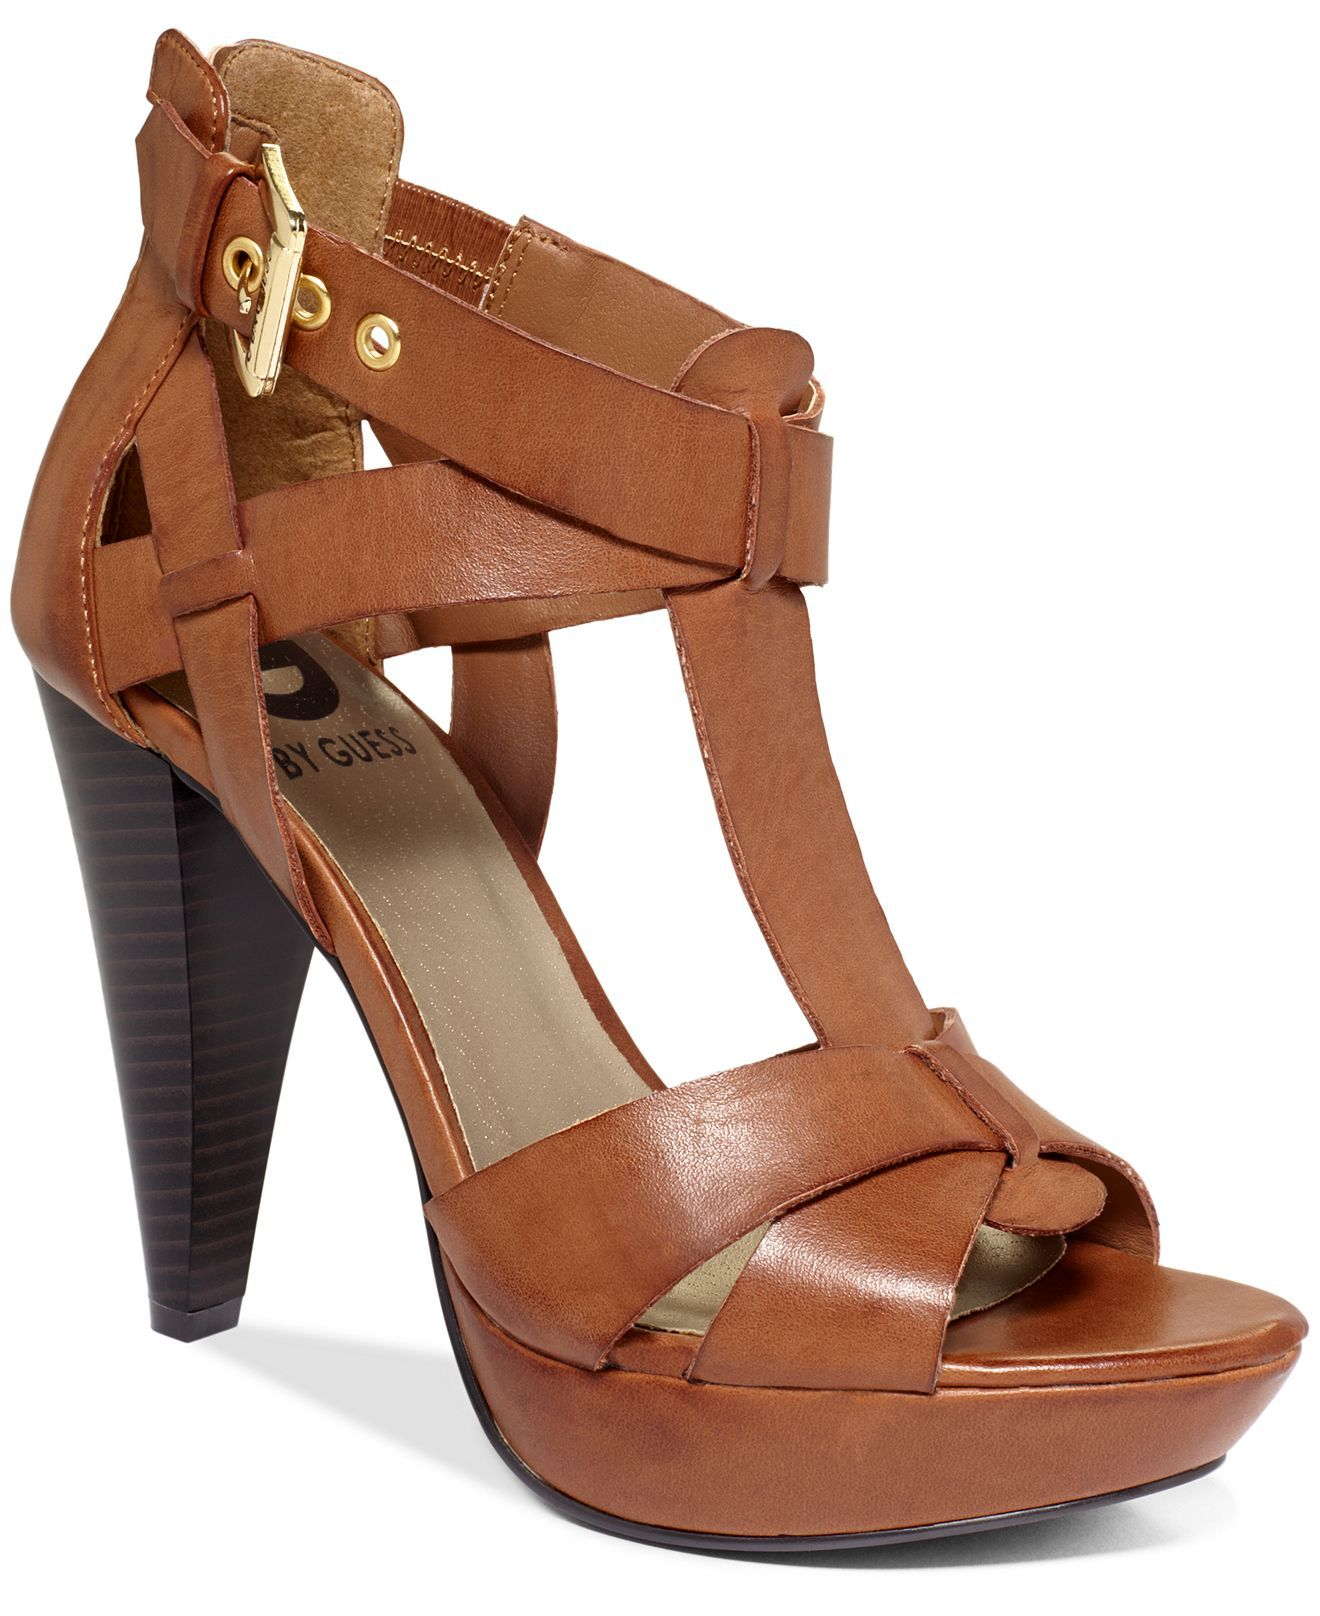 132c56fabcb3 I want these!!!!! G by GUESS Womens Shoes